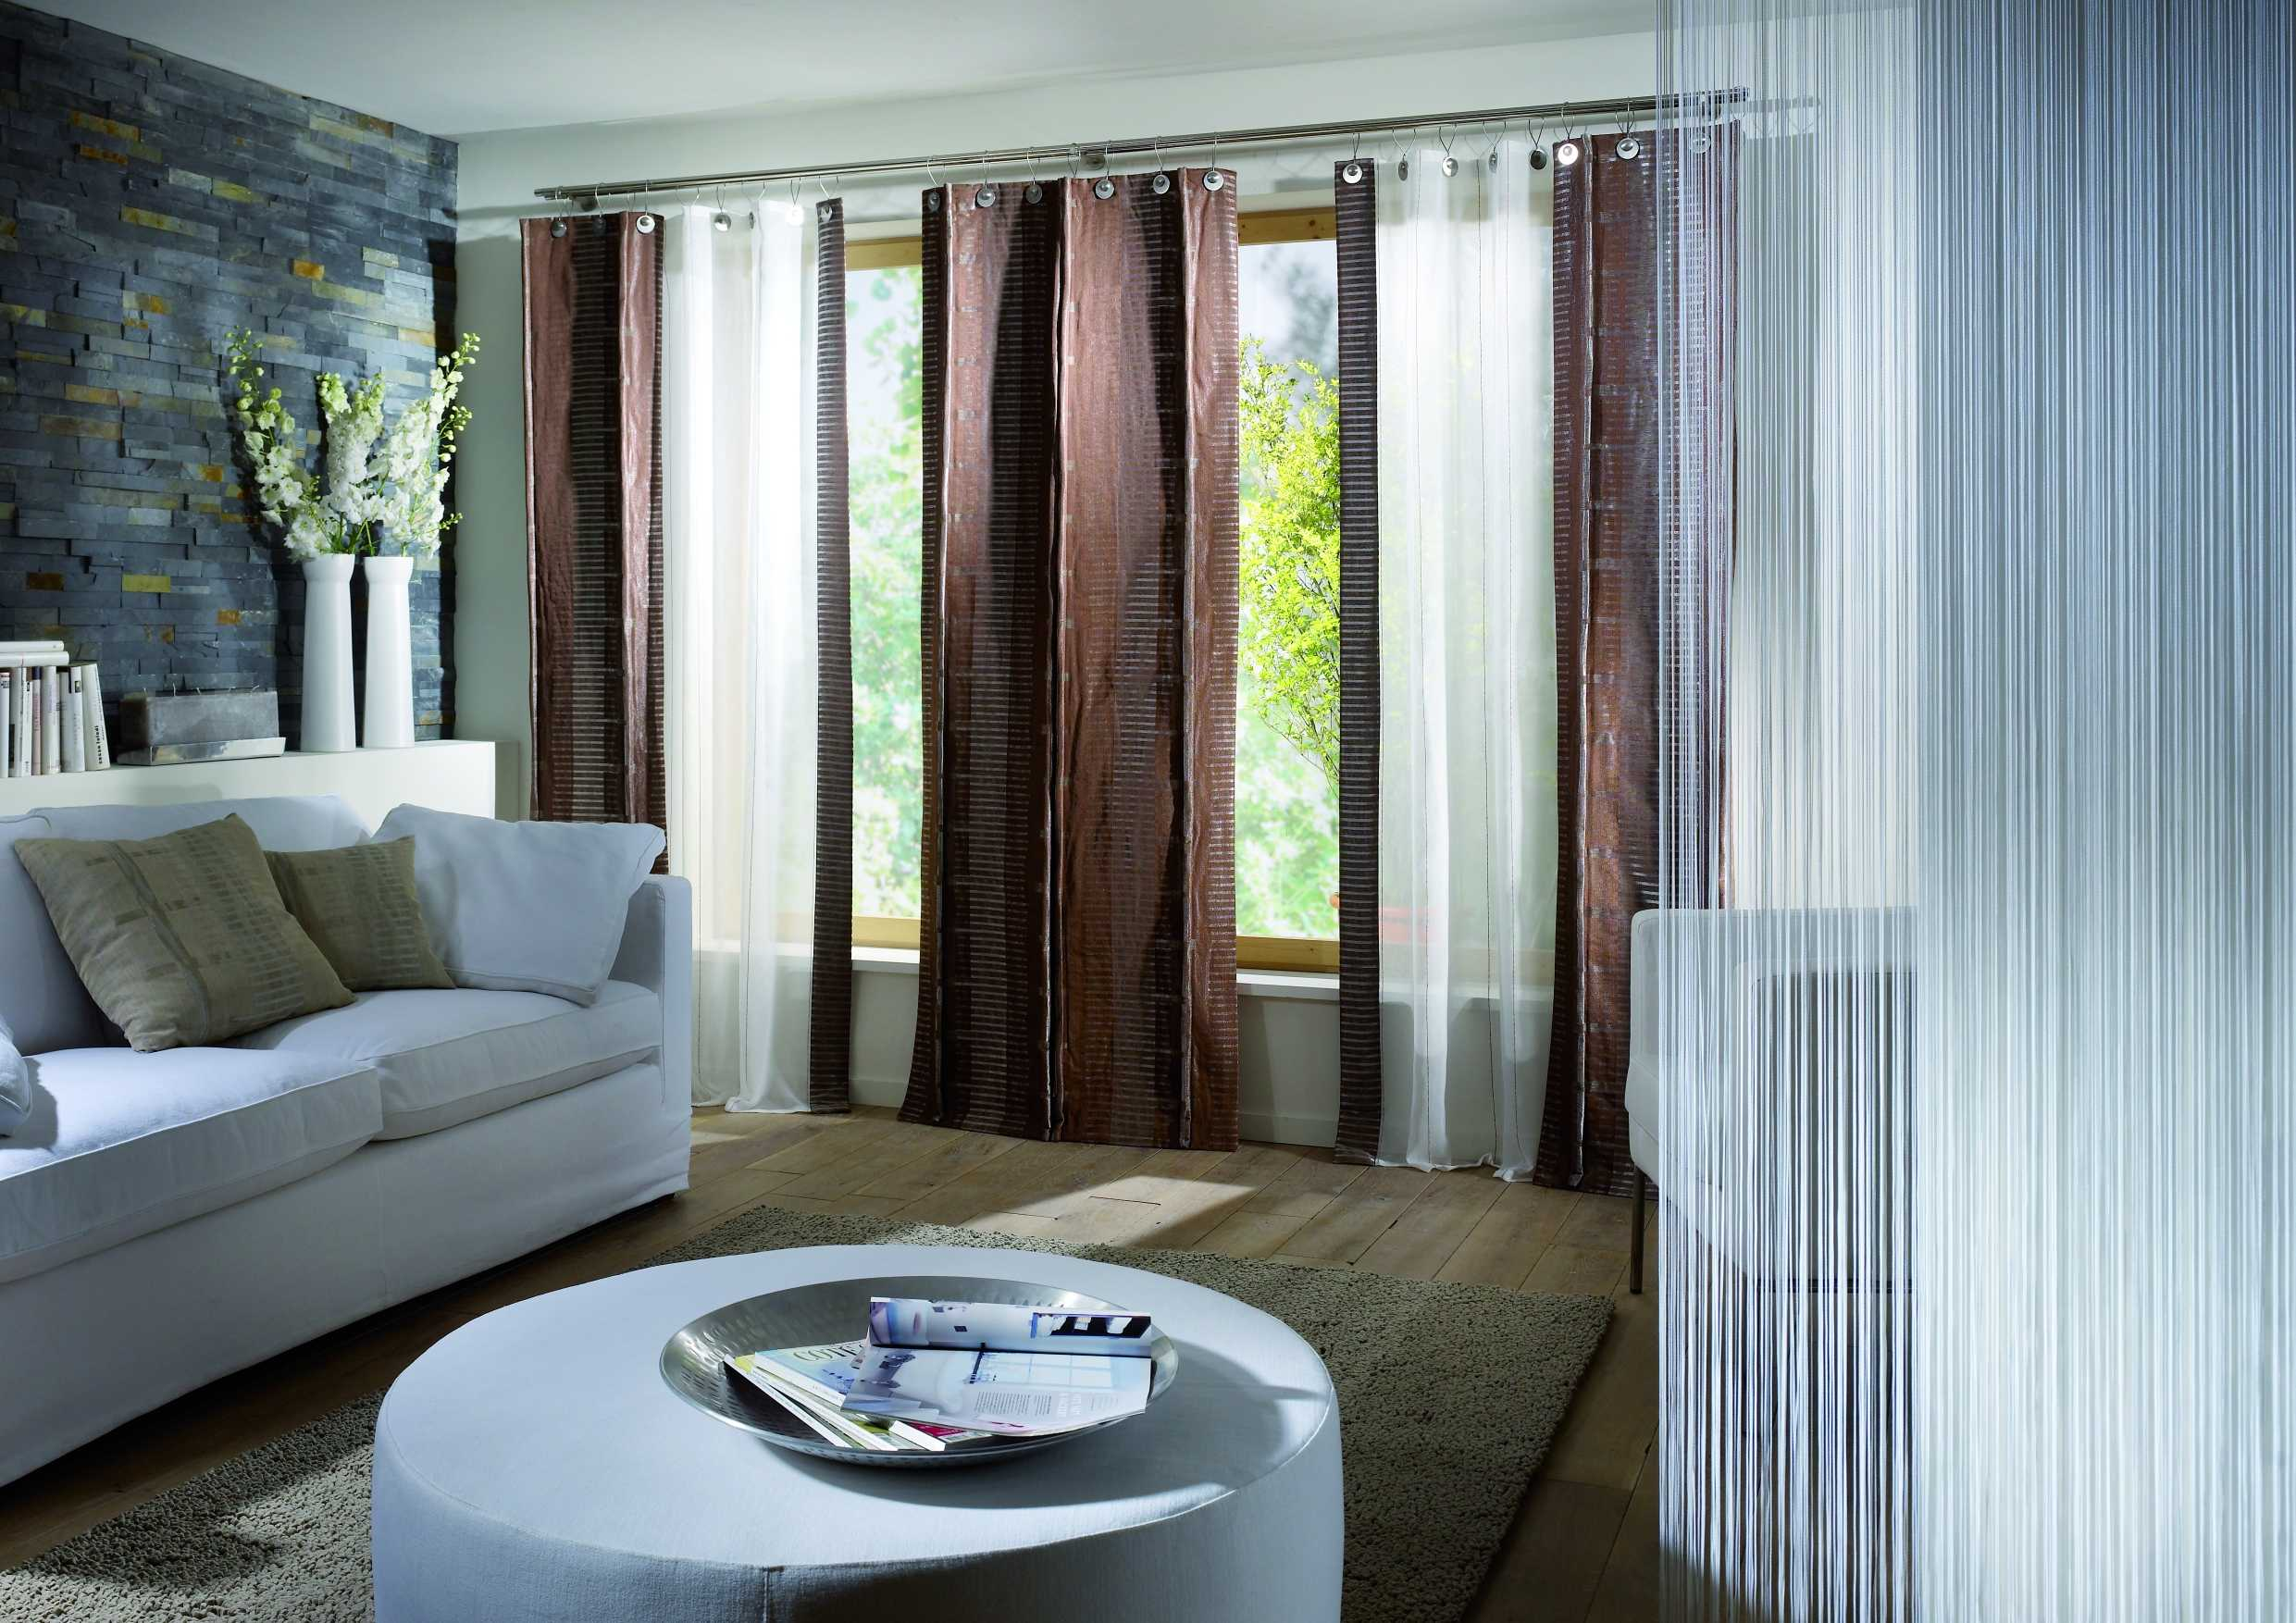 marvellous curtains for a living room window